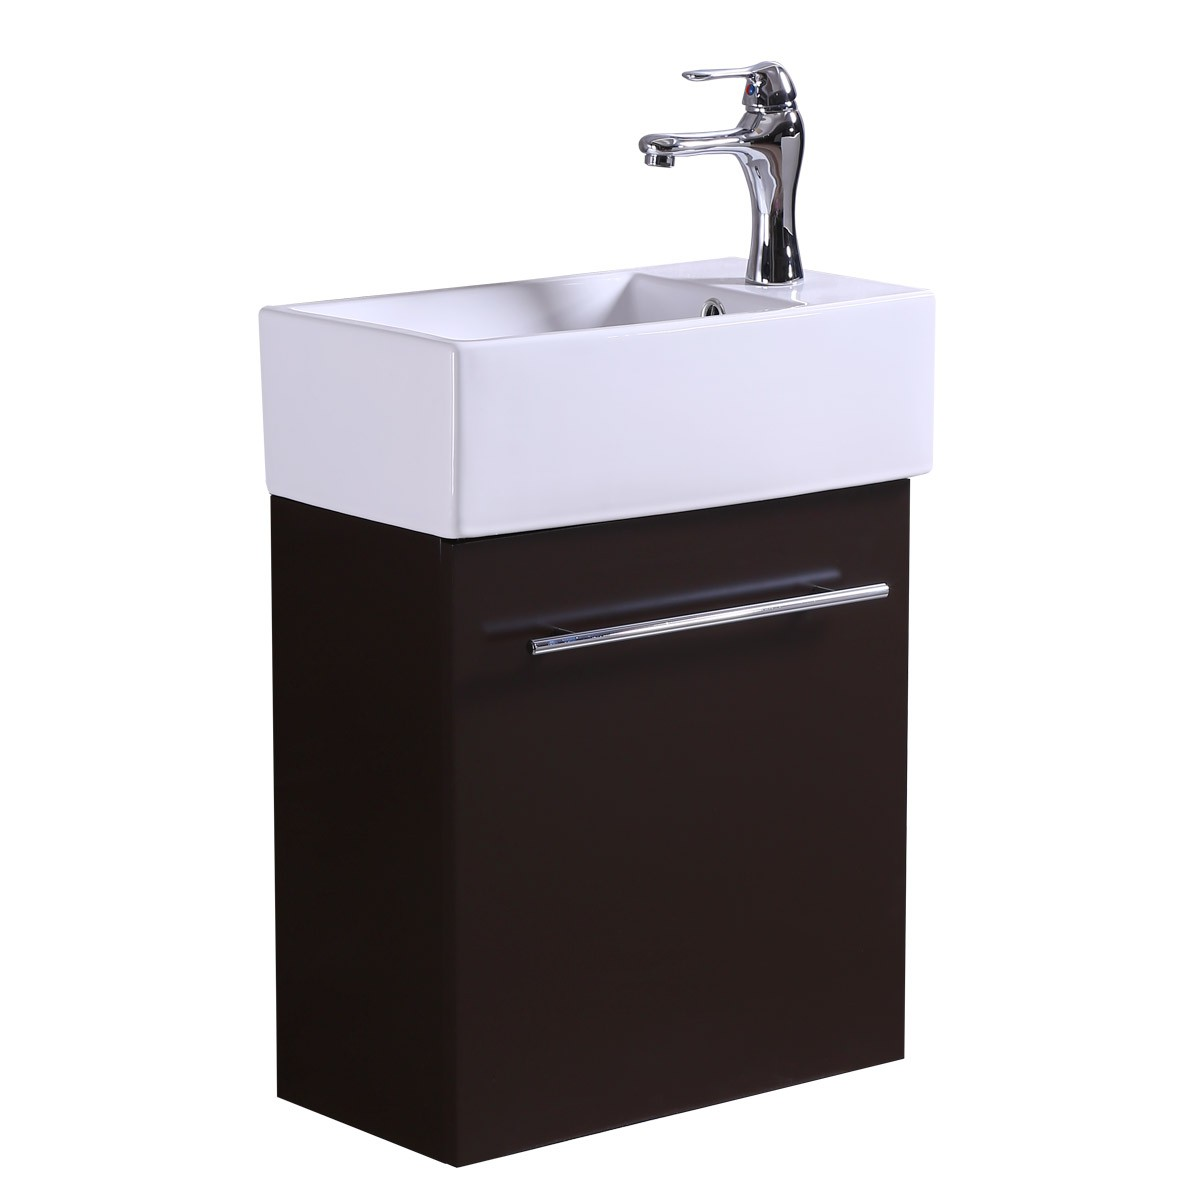 Small Bathroom Sink Cabinet Vanity Faucet Incl Wall Mount